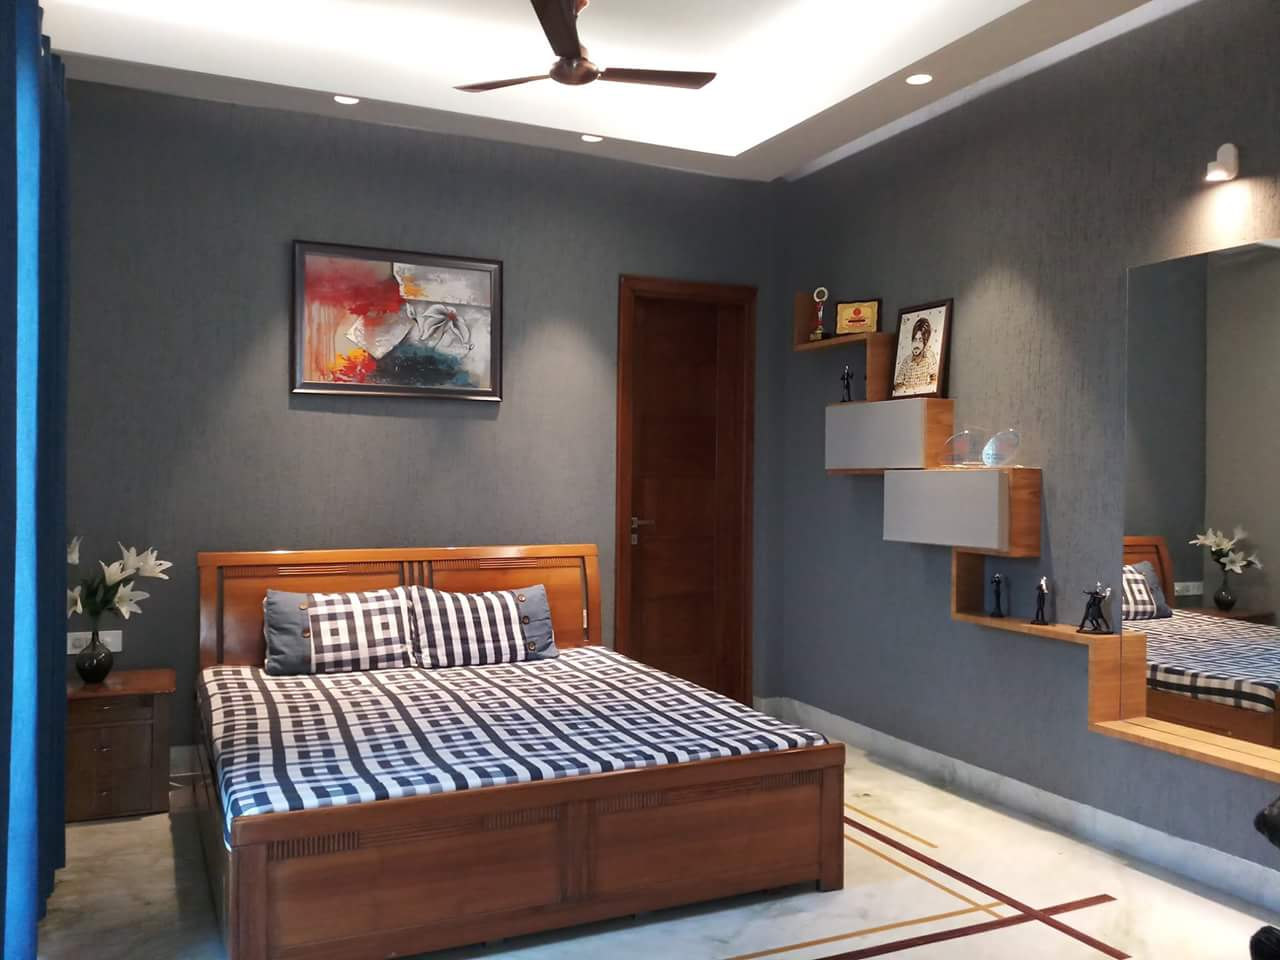 Queen Size Wooden Bed with Wooden Display Panels Hinged To Blue Wall by Sumita Mehra Bedroom Contemporary | Interior Design Photos & Ideas